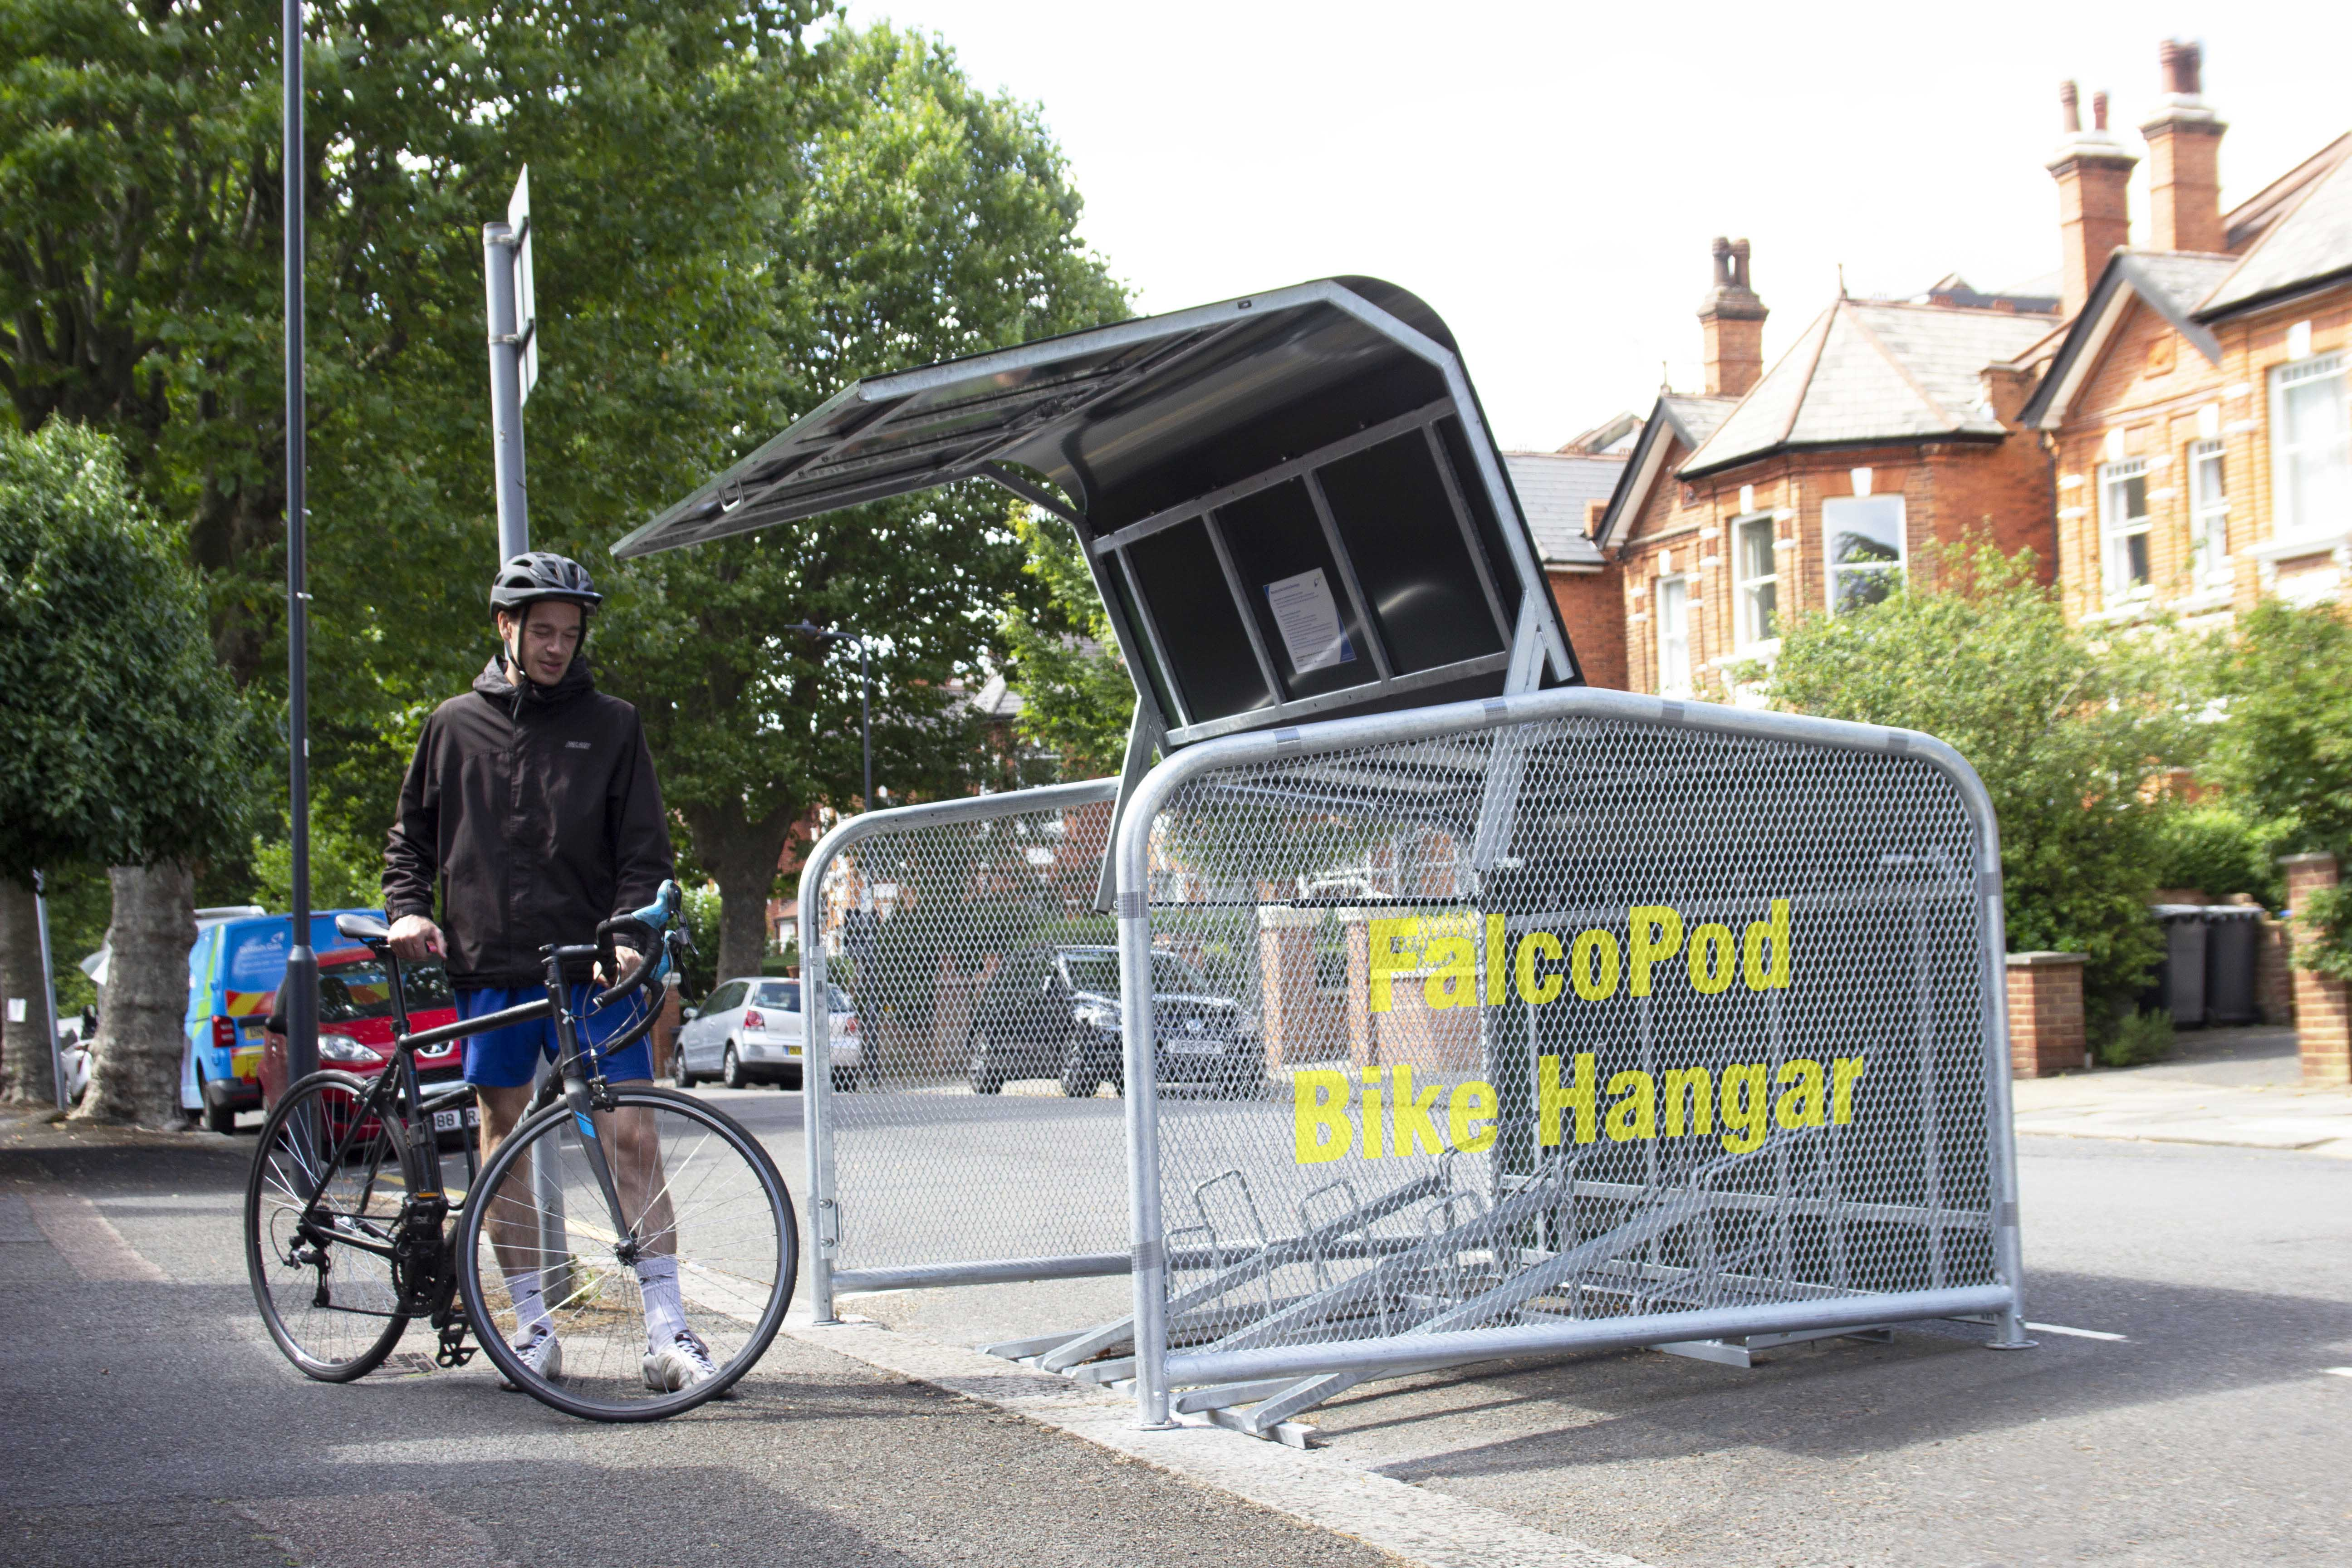 FalcoPod Bike Hangar Wording Concept on Cladding